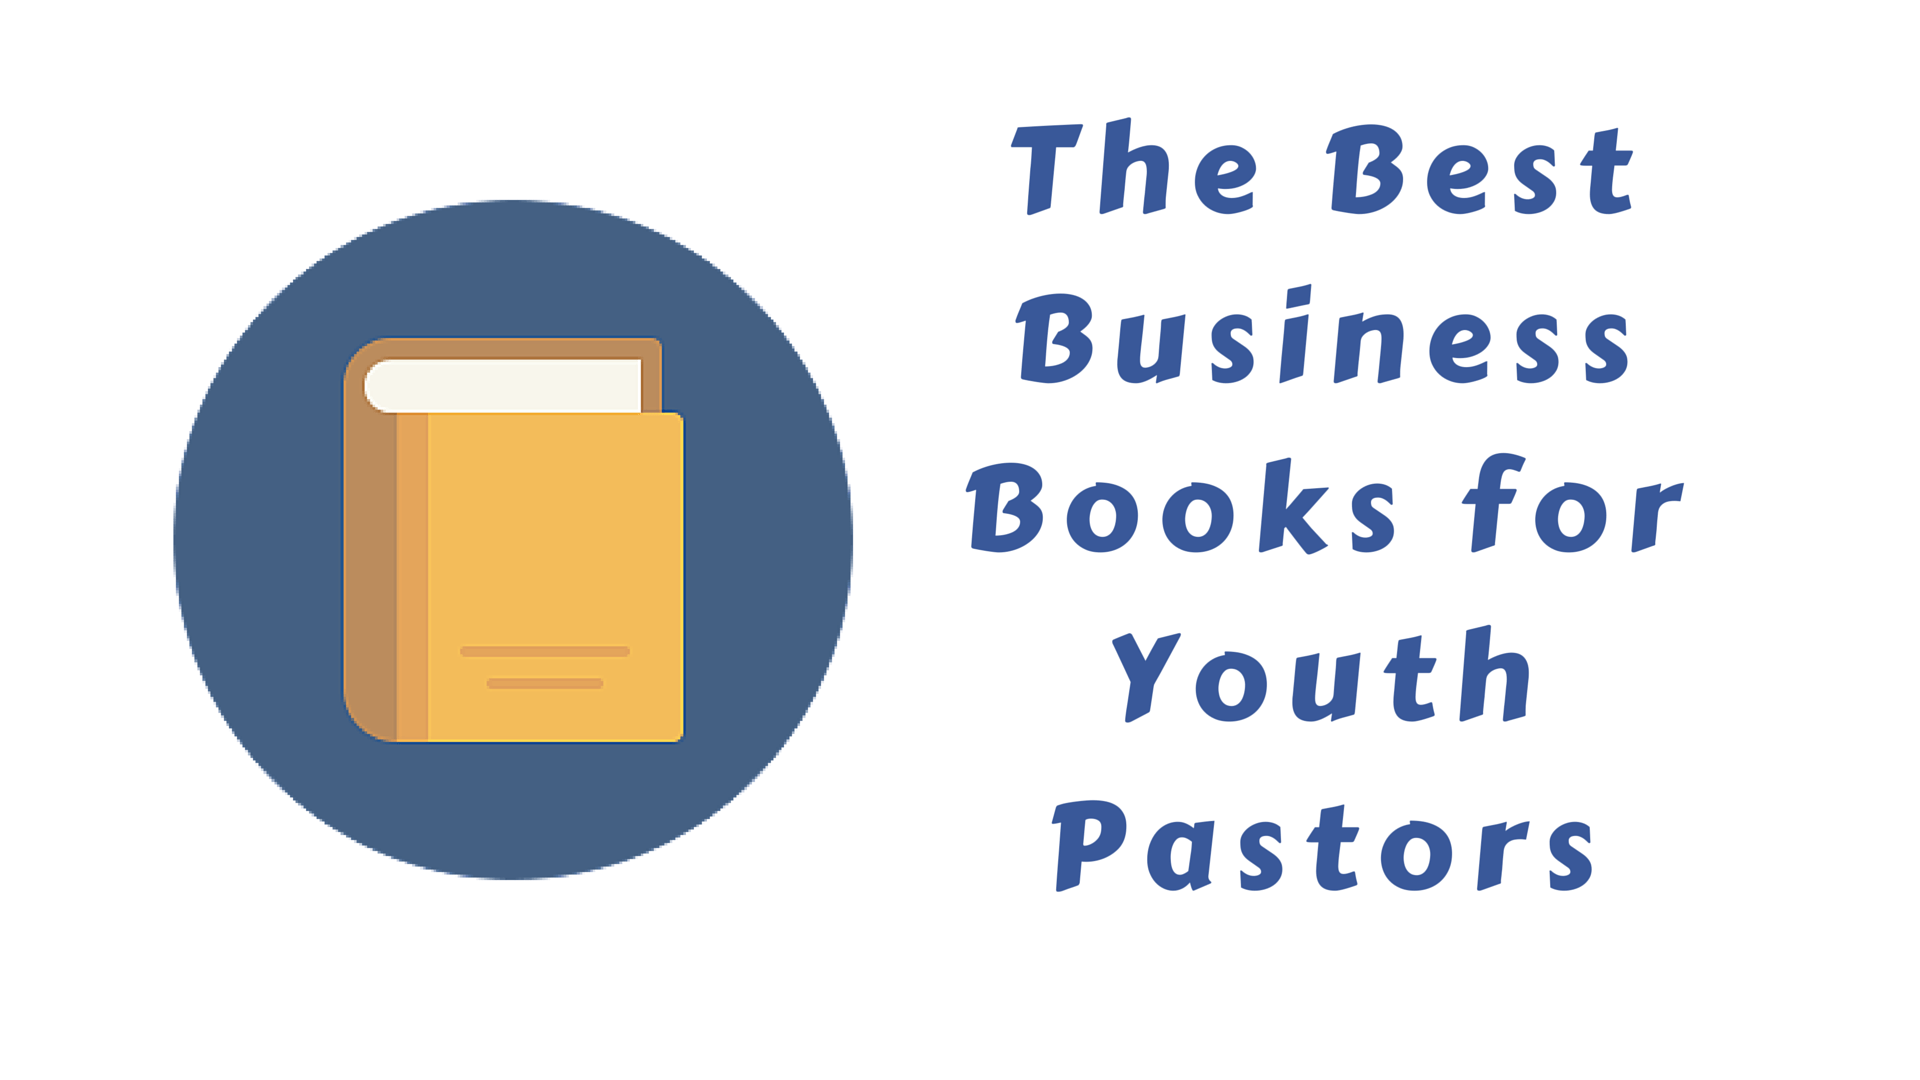 best business books for youth pastors